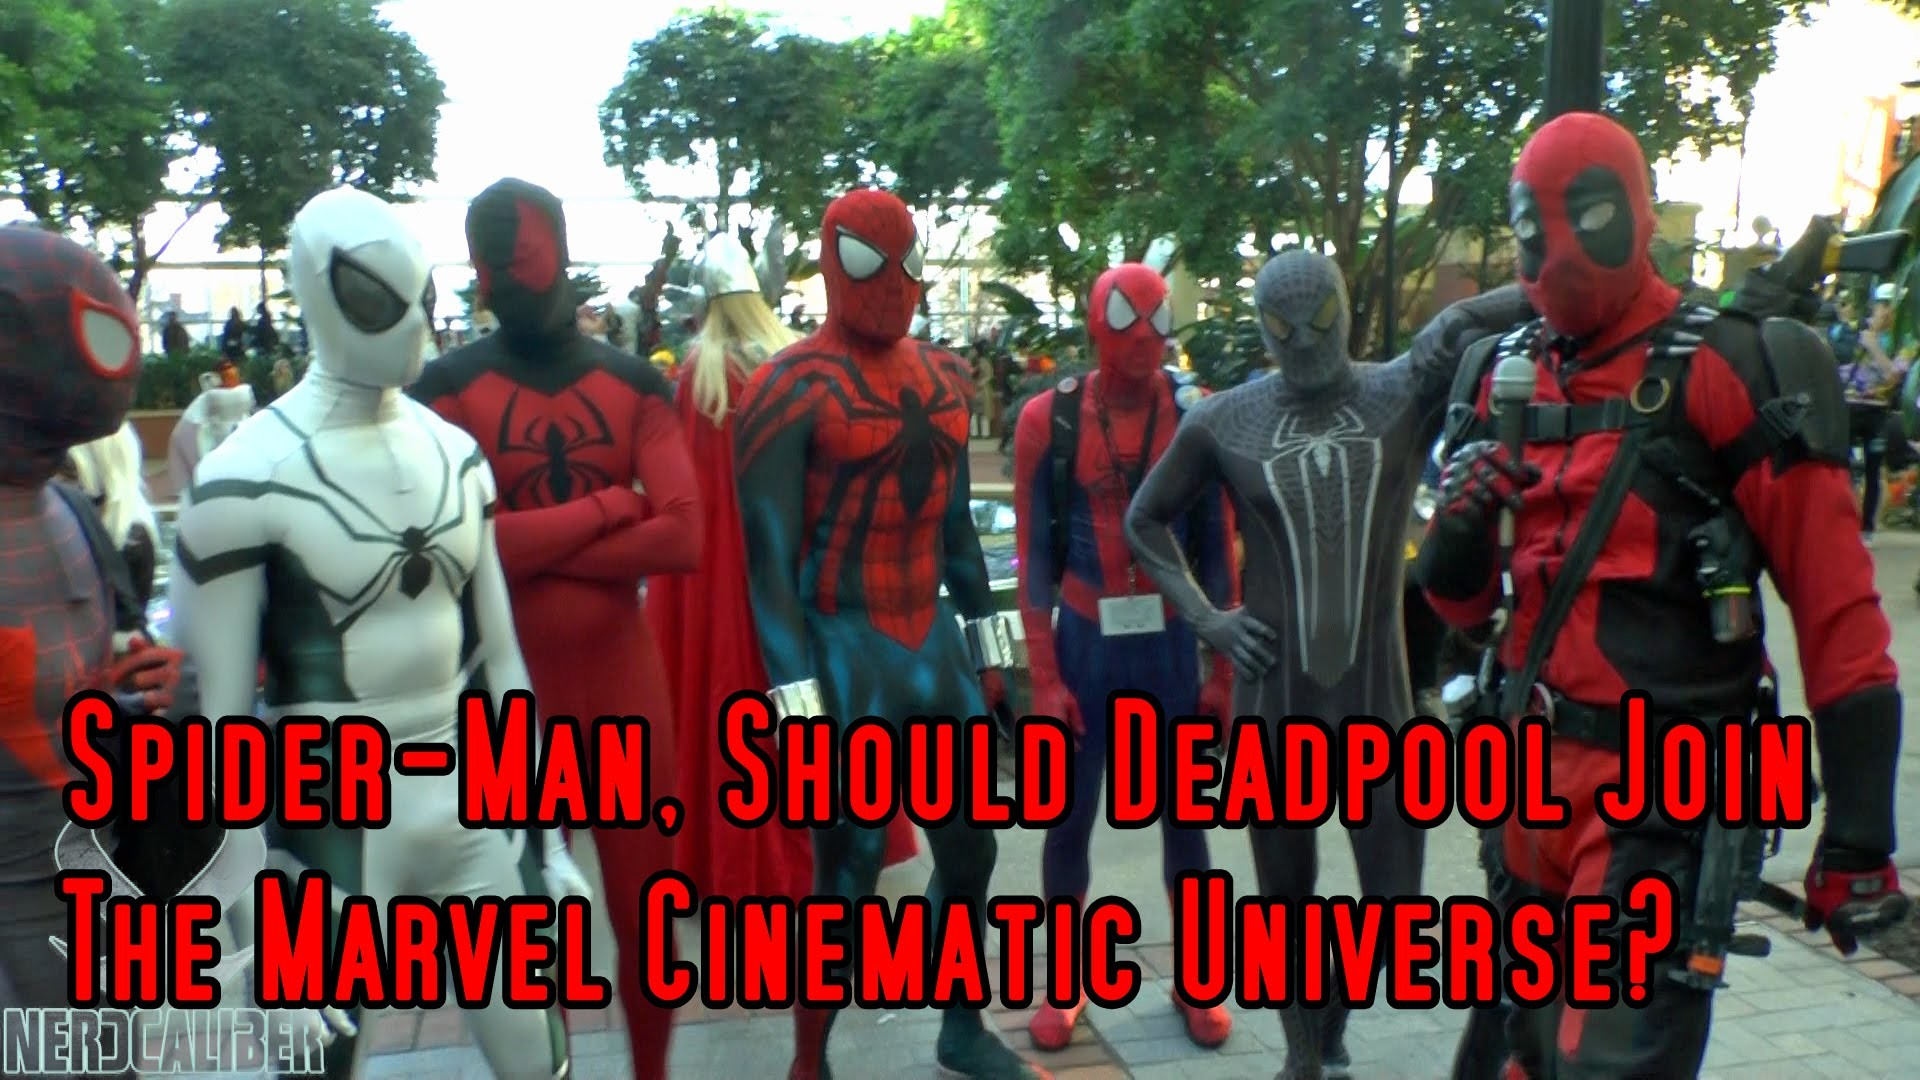 Spider-Man, Should Deadpool Join The Marvel Cinematic Universe? Katsucon  2015 Cosplay – YouTube